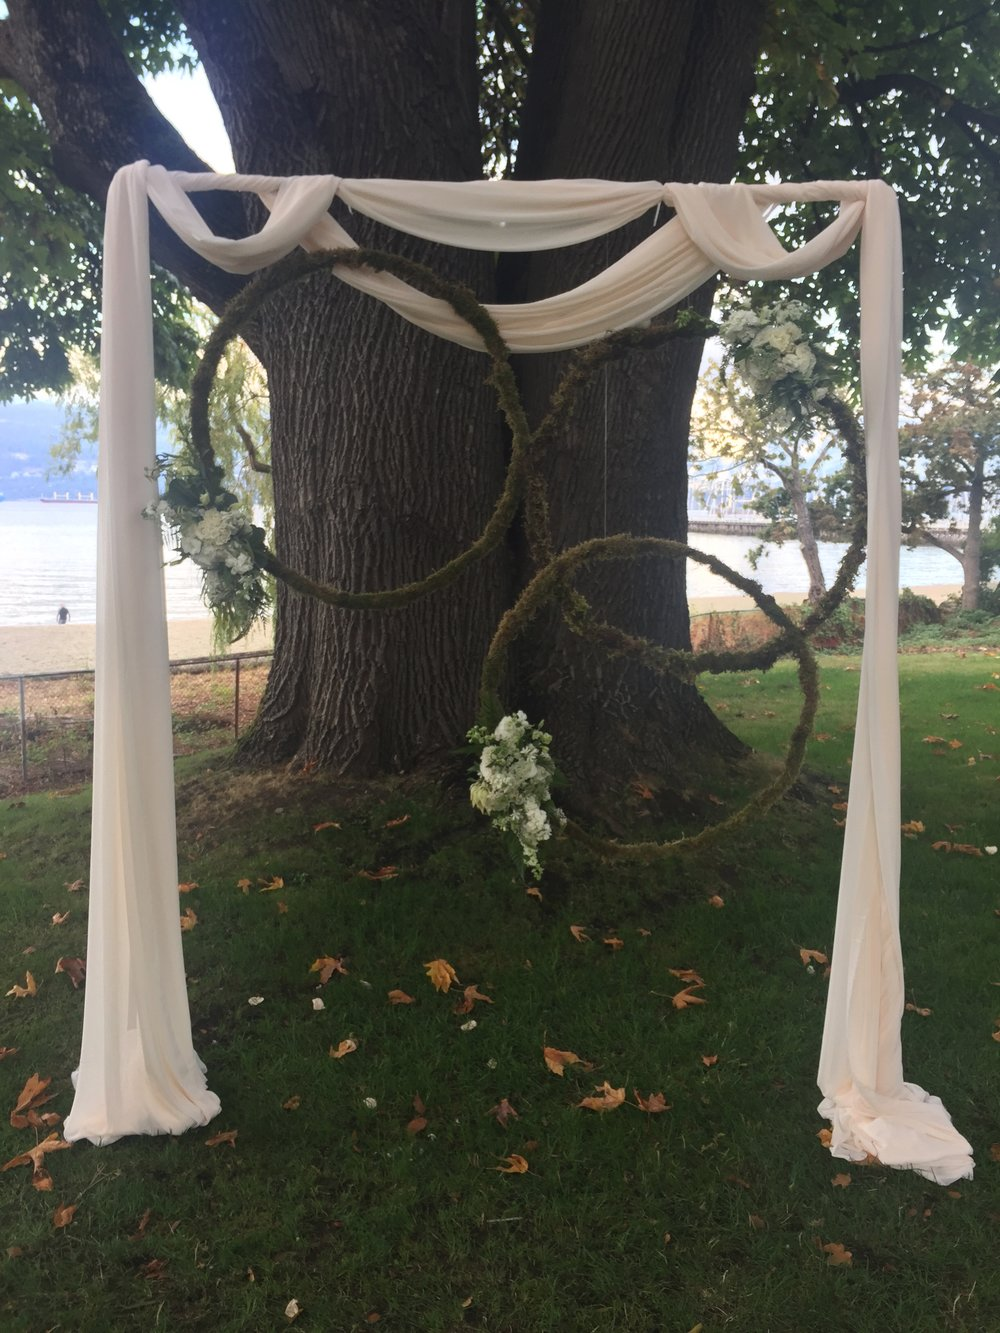 pipe arch + fabric treatment (greenery hoops sold separately)   Quantity: 1  Price: $195.00